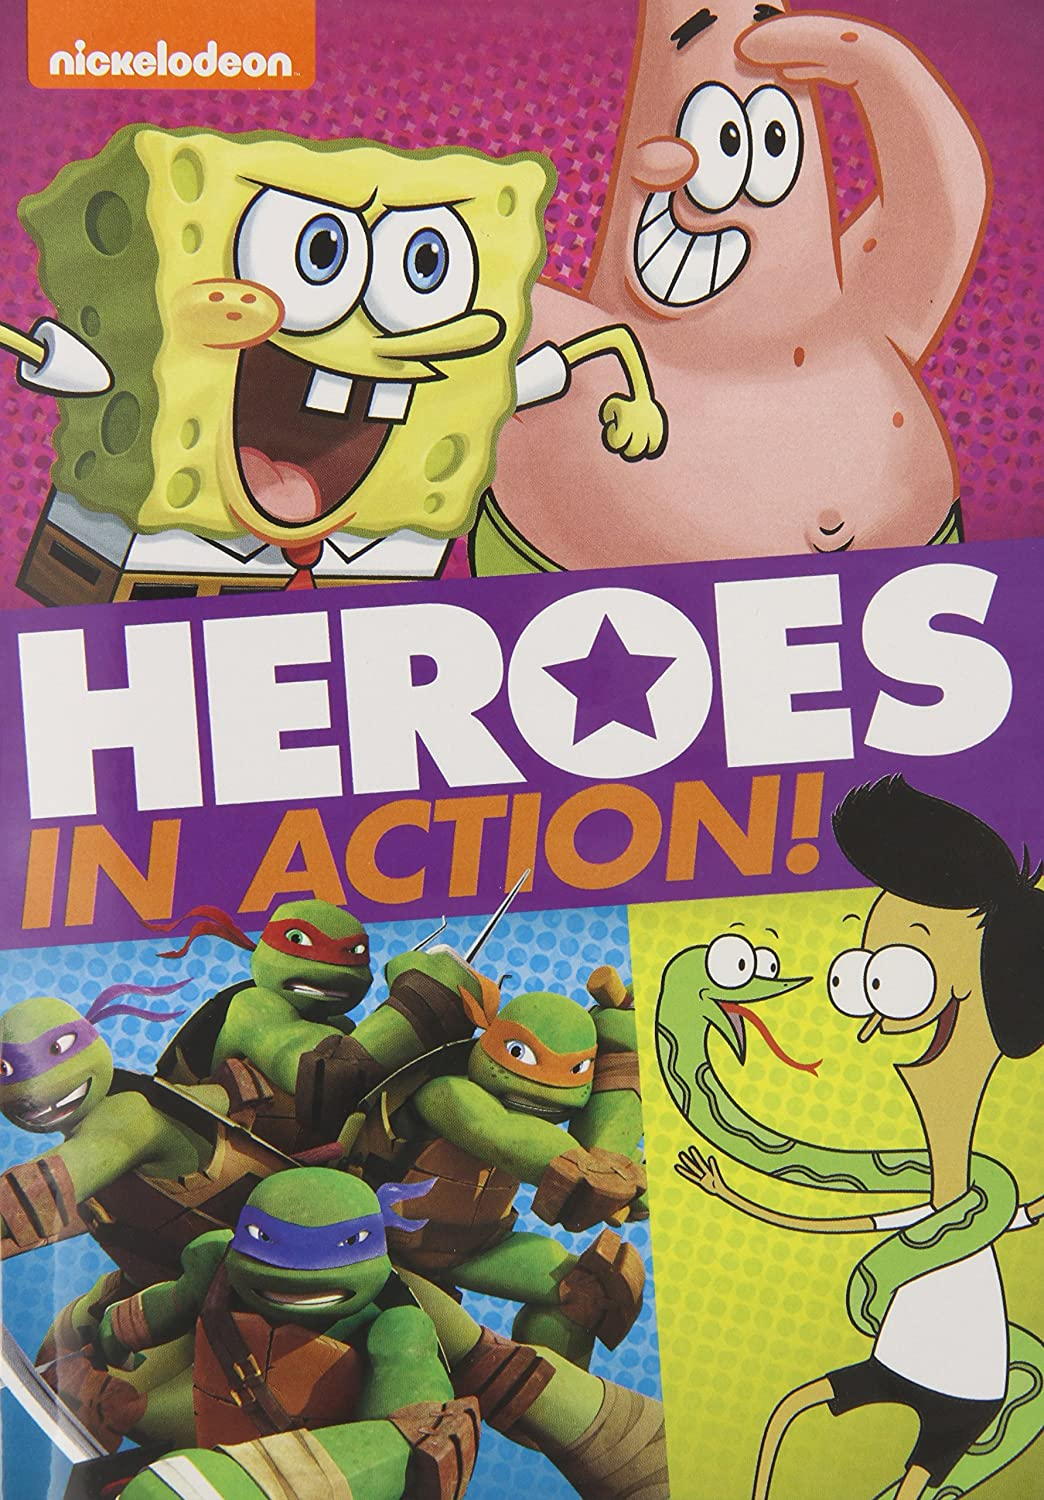 http://www.amazon.com/Nickelodeon-Heroes-Artist-Not-Provided/dp/B00J5G1NA6/